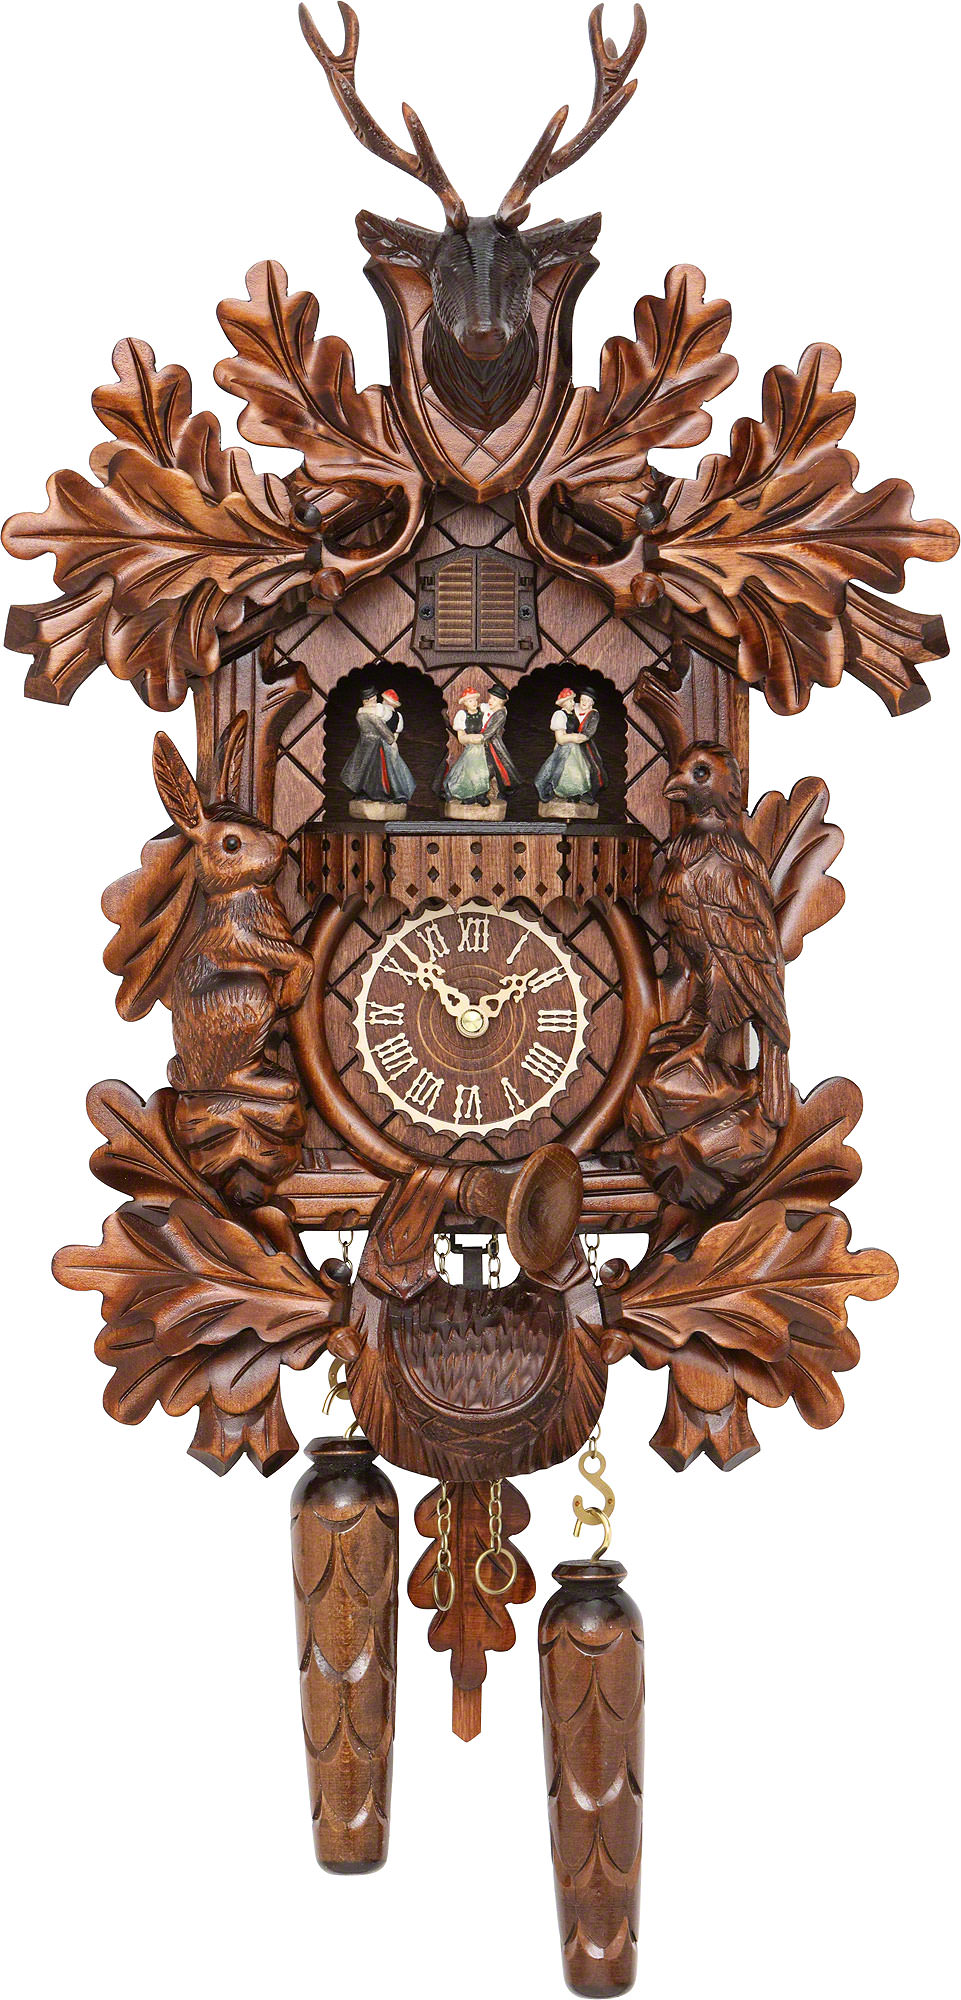 Cuckoo clock quartz movement carved style cm by trenkle